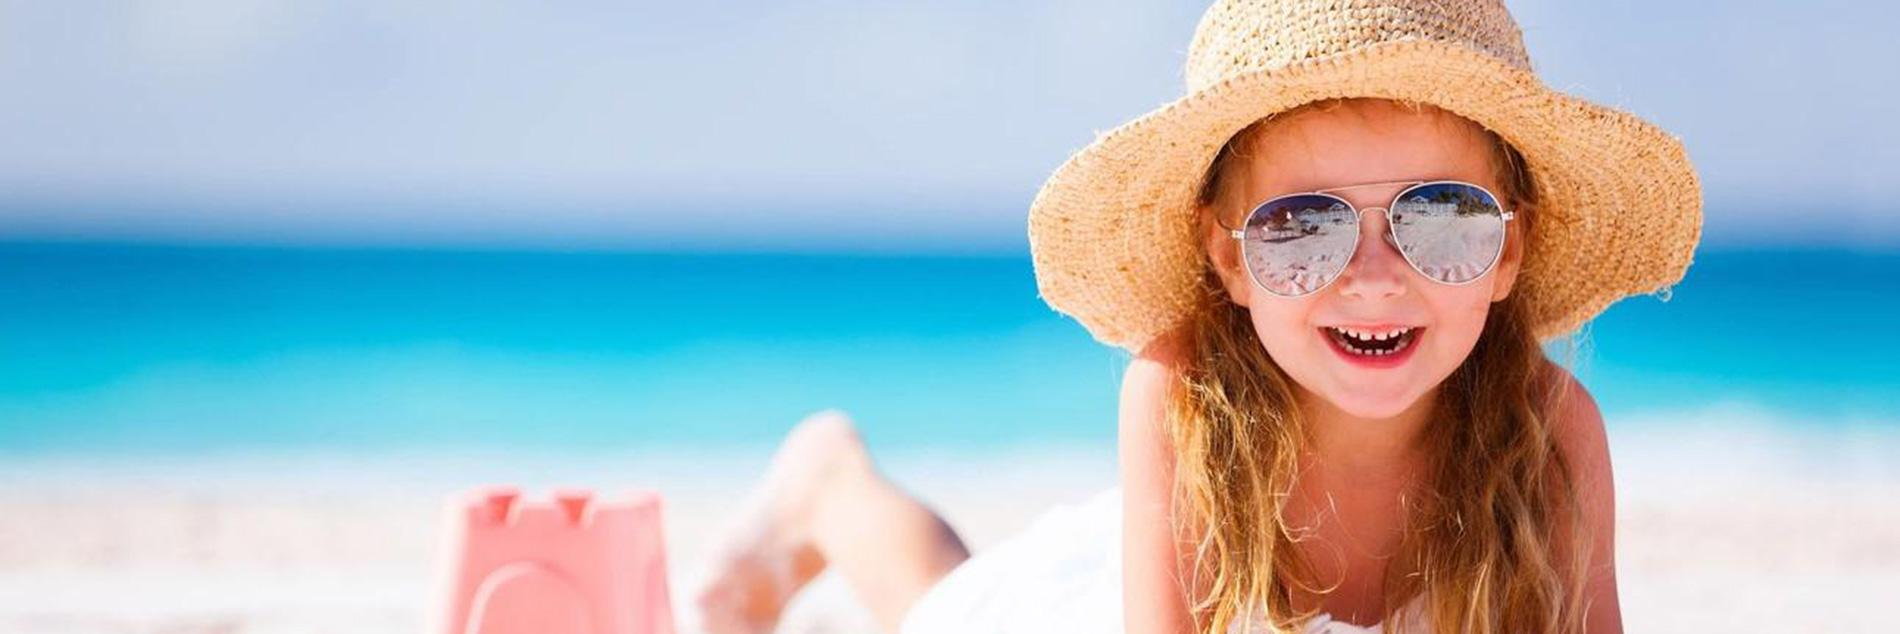 Girl on Beach | Pediatric Dentistry Santa Monica CA